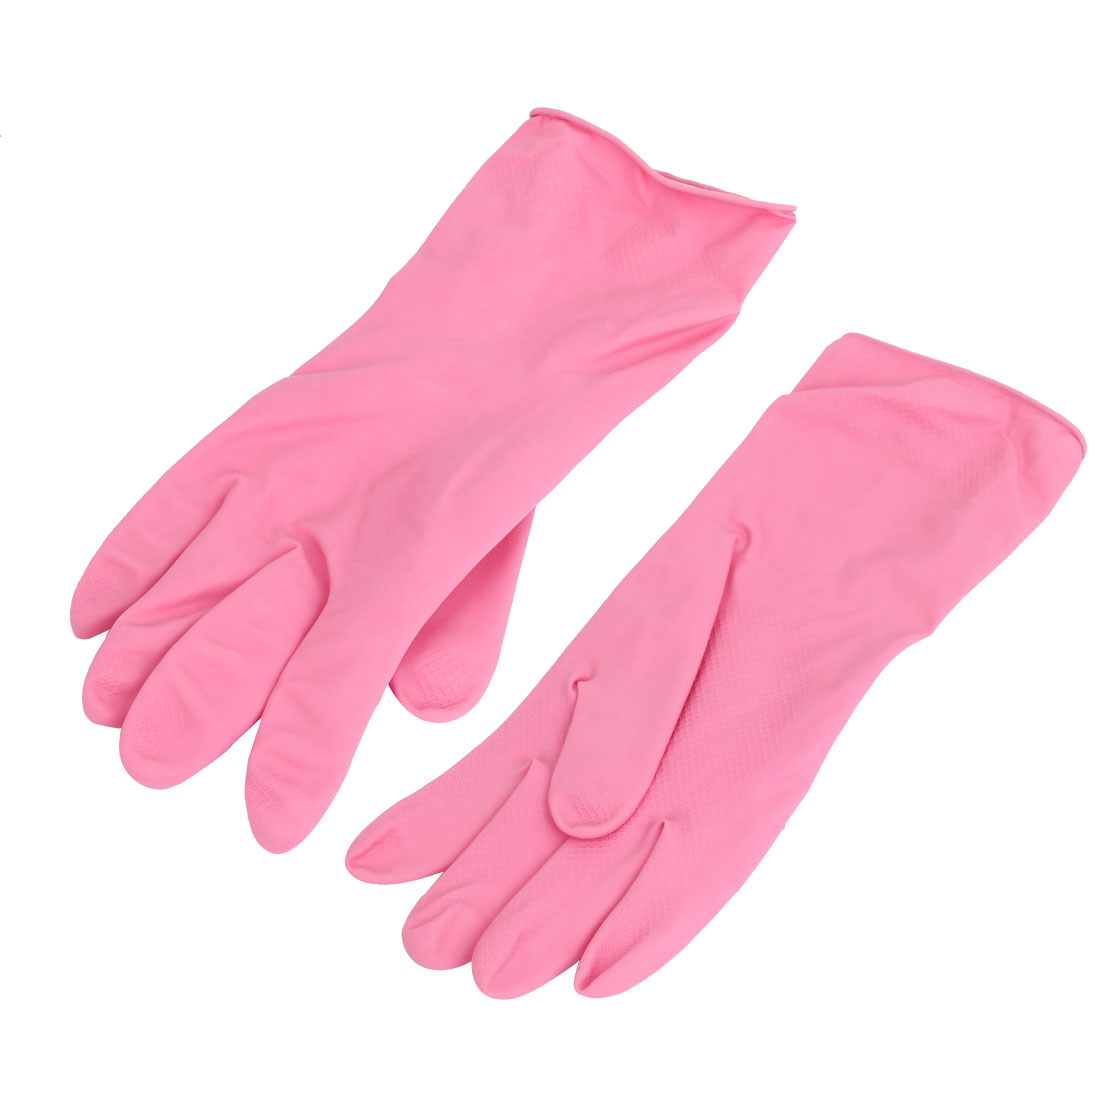 30cm Length Rubber Household Kitchen Dish Cleaning Washing Gloves Fuchsia Pair